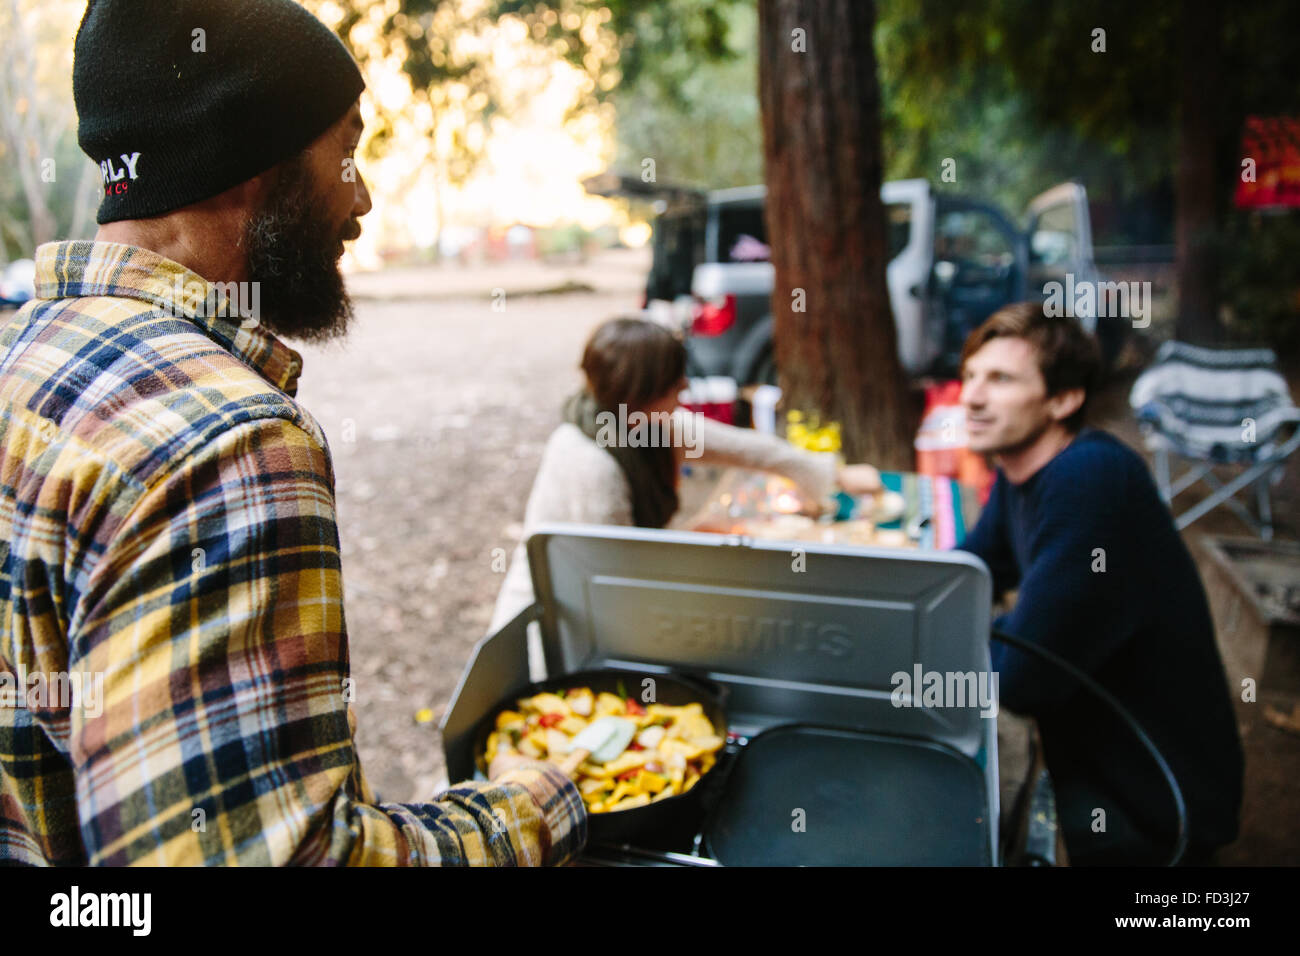 Breakfast is ready at a campsite in Big Sur, California - Stock Image